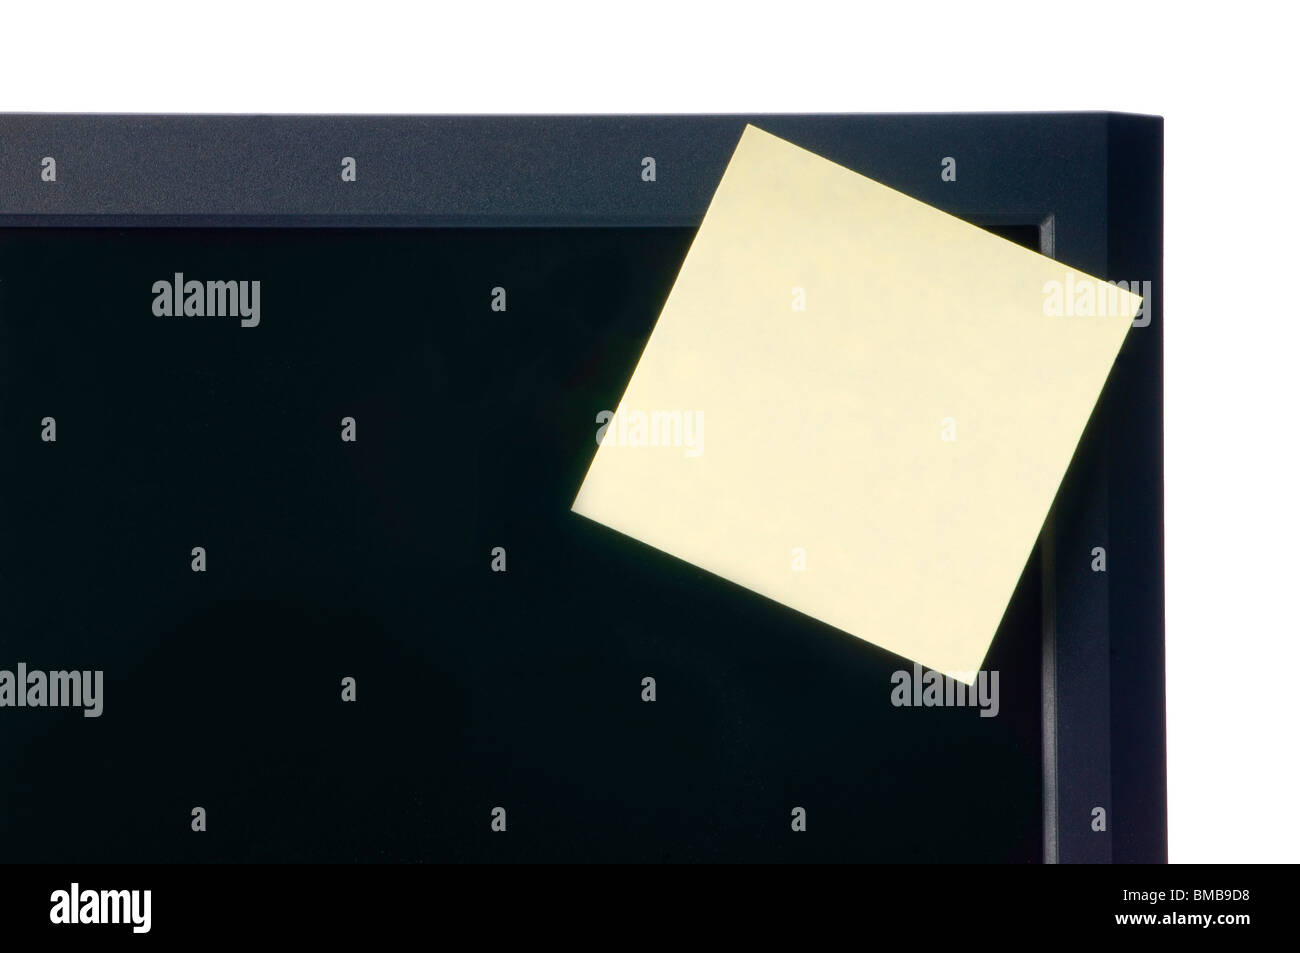 comupter monitor with post it note sticky note - Stock Image